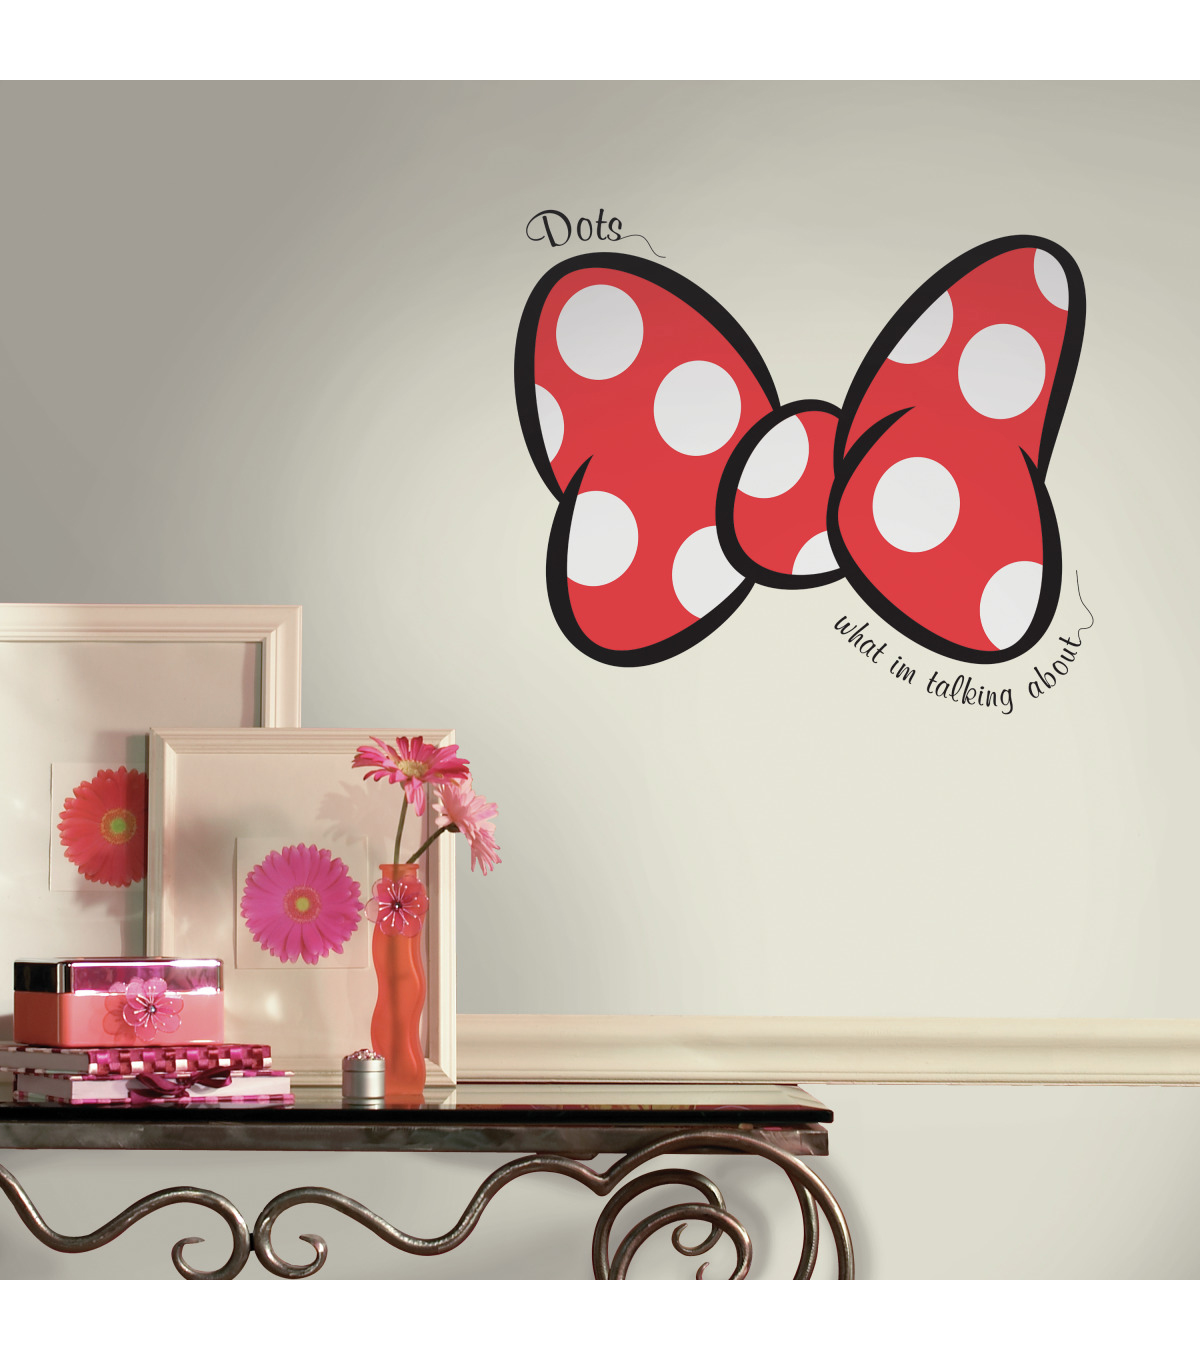 York Wallcoverings Giant Graphic-Dots What I\u0027m Talking About